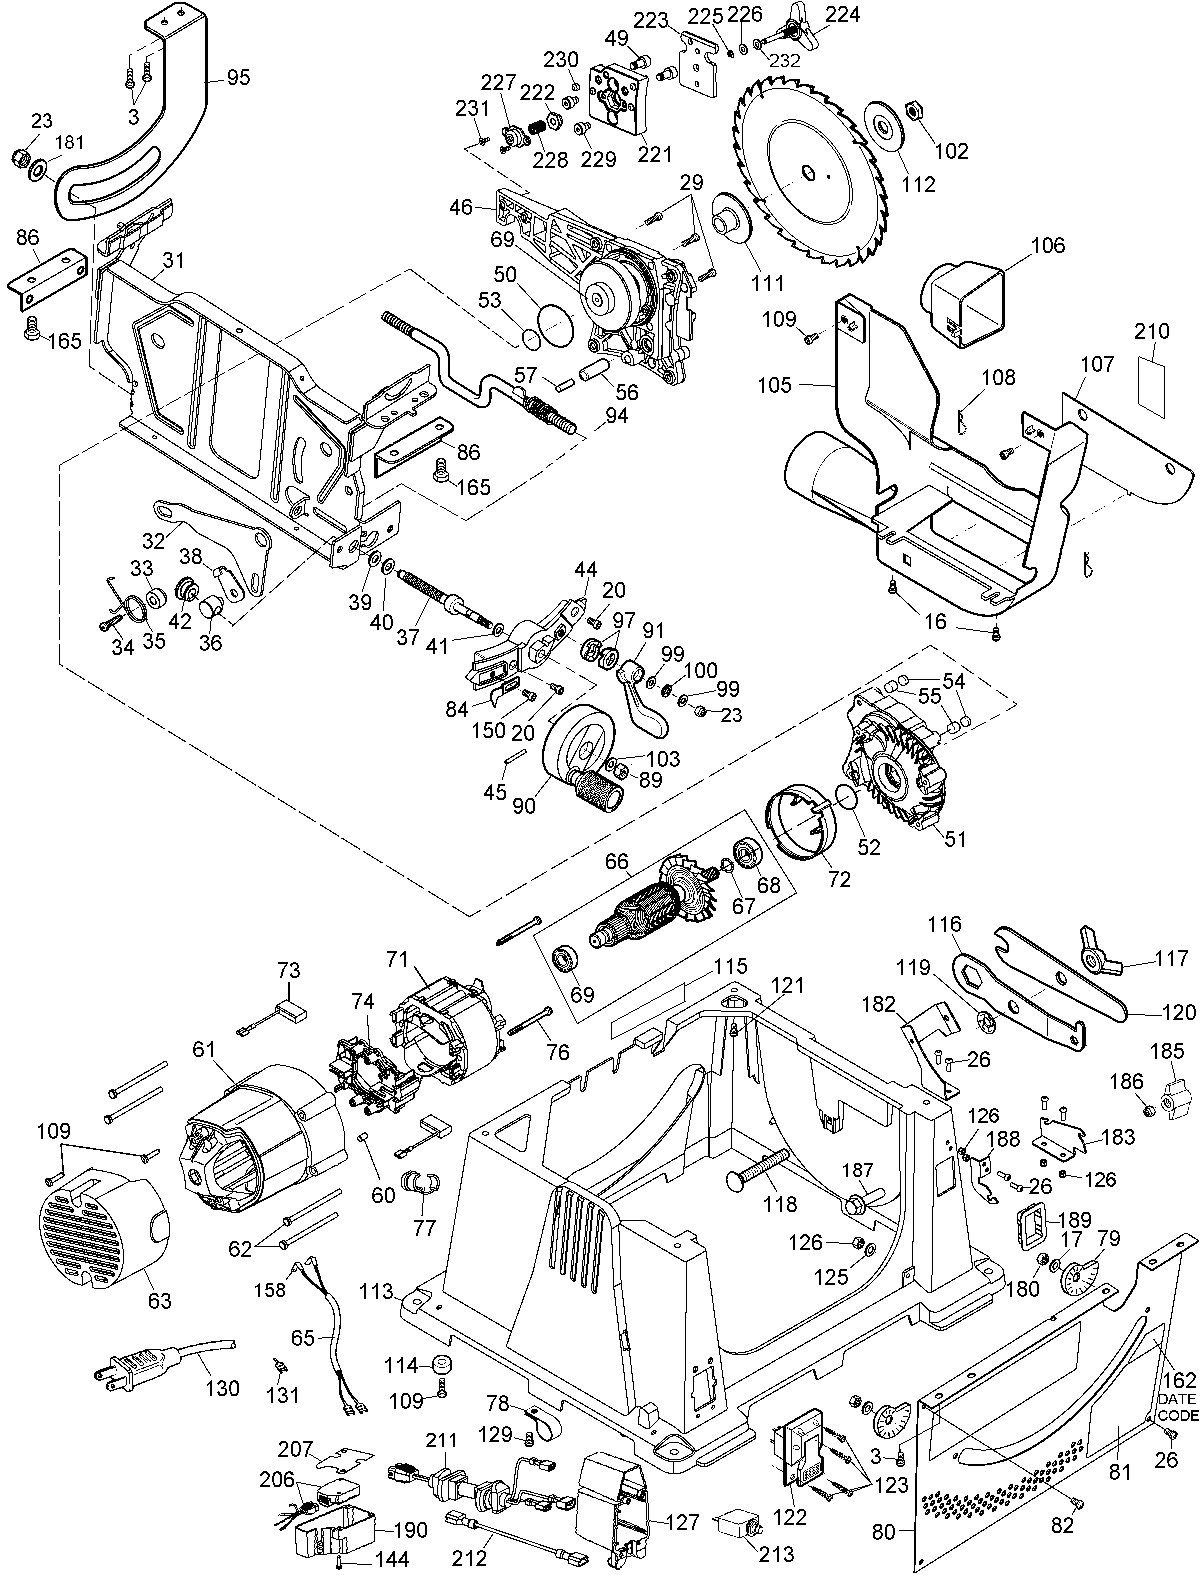 dw744 wiring diagram